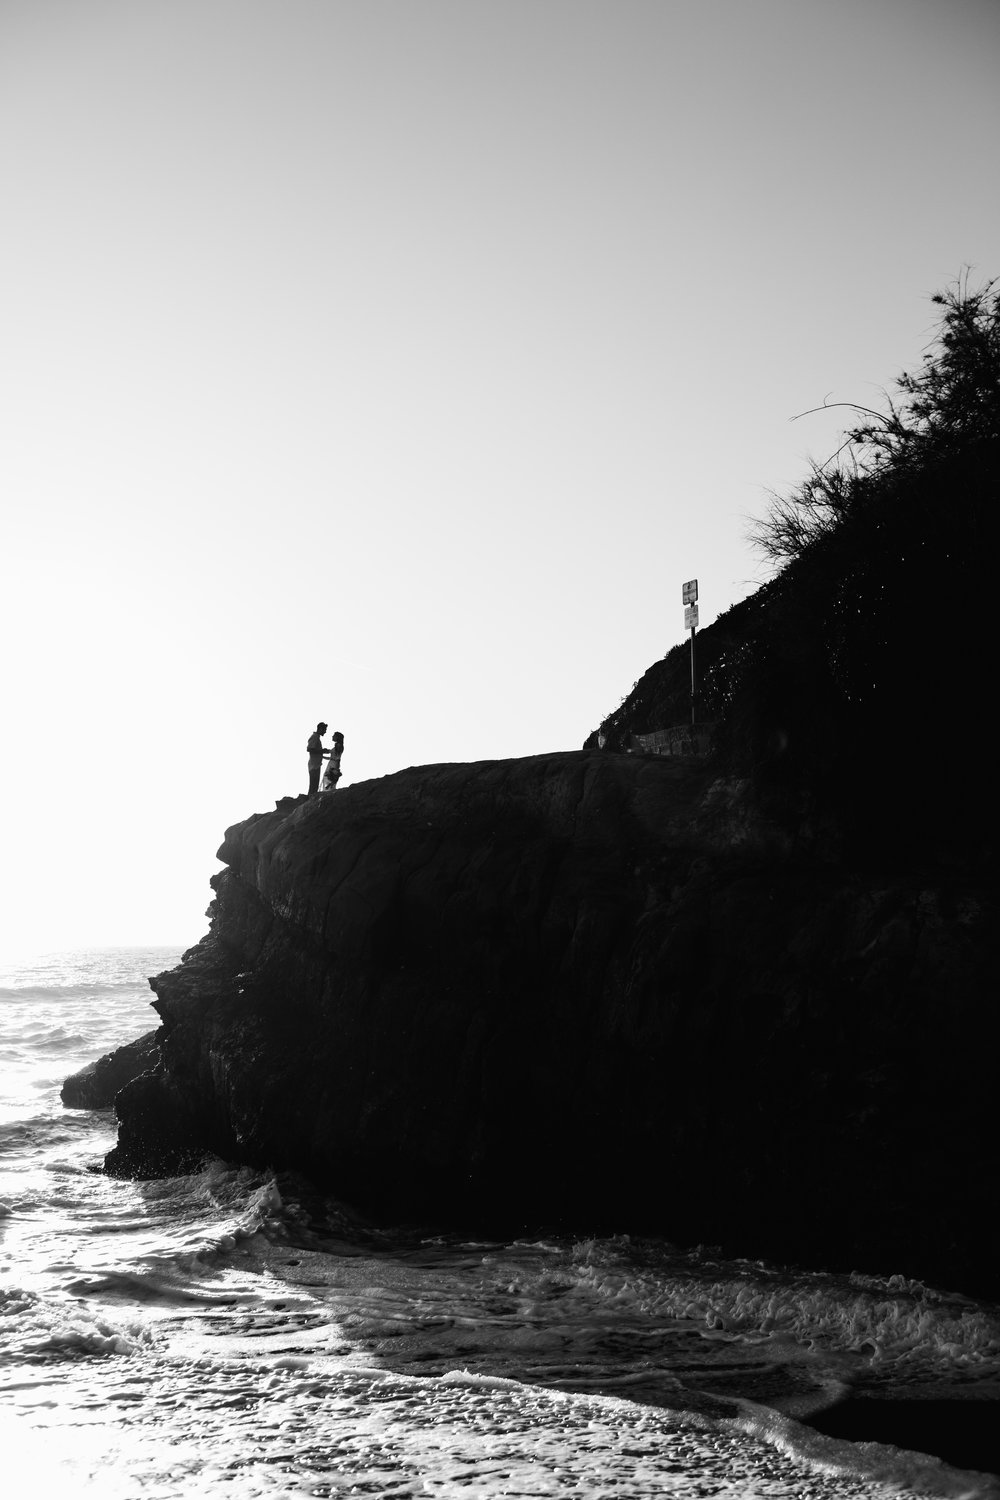 KaraNixonWeddings-LagunaBeach-Tablerock-Elopement-56.jpg